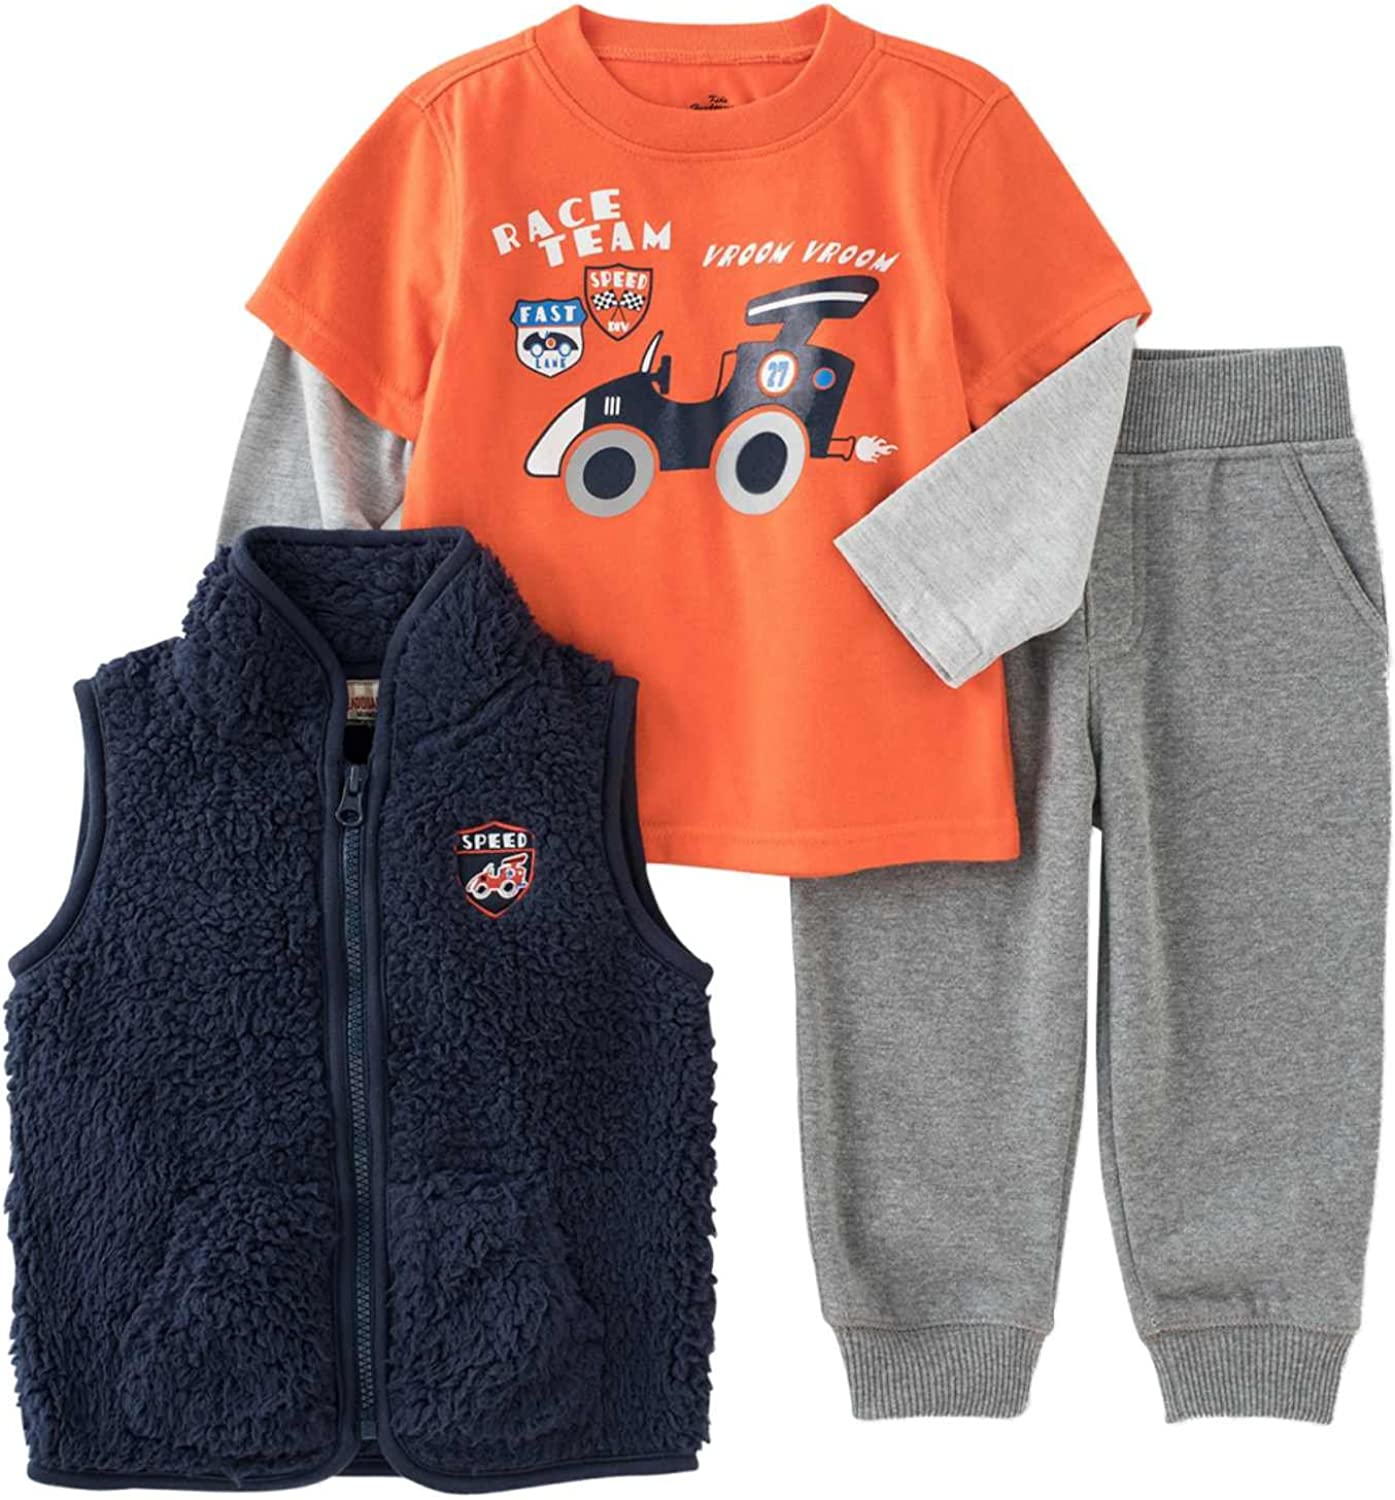 Shirt Kids Headquarters 3-Piece Set: Vest and Pants Toddler Girls size 3T NEW